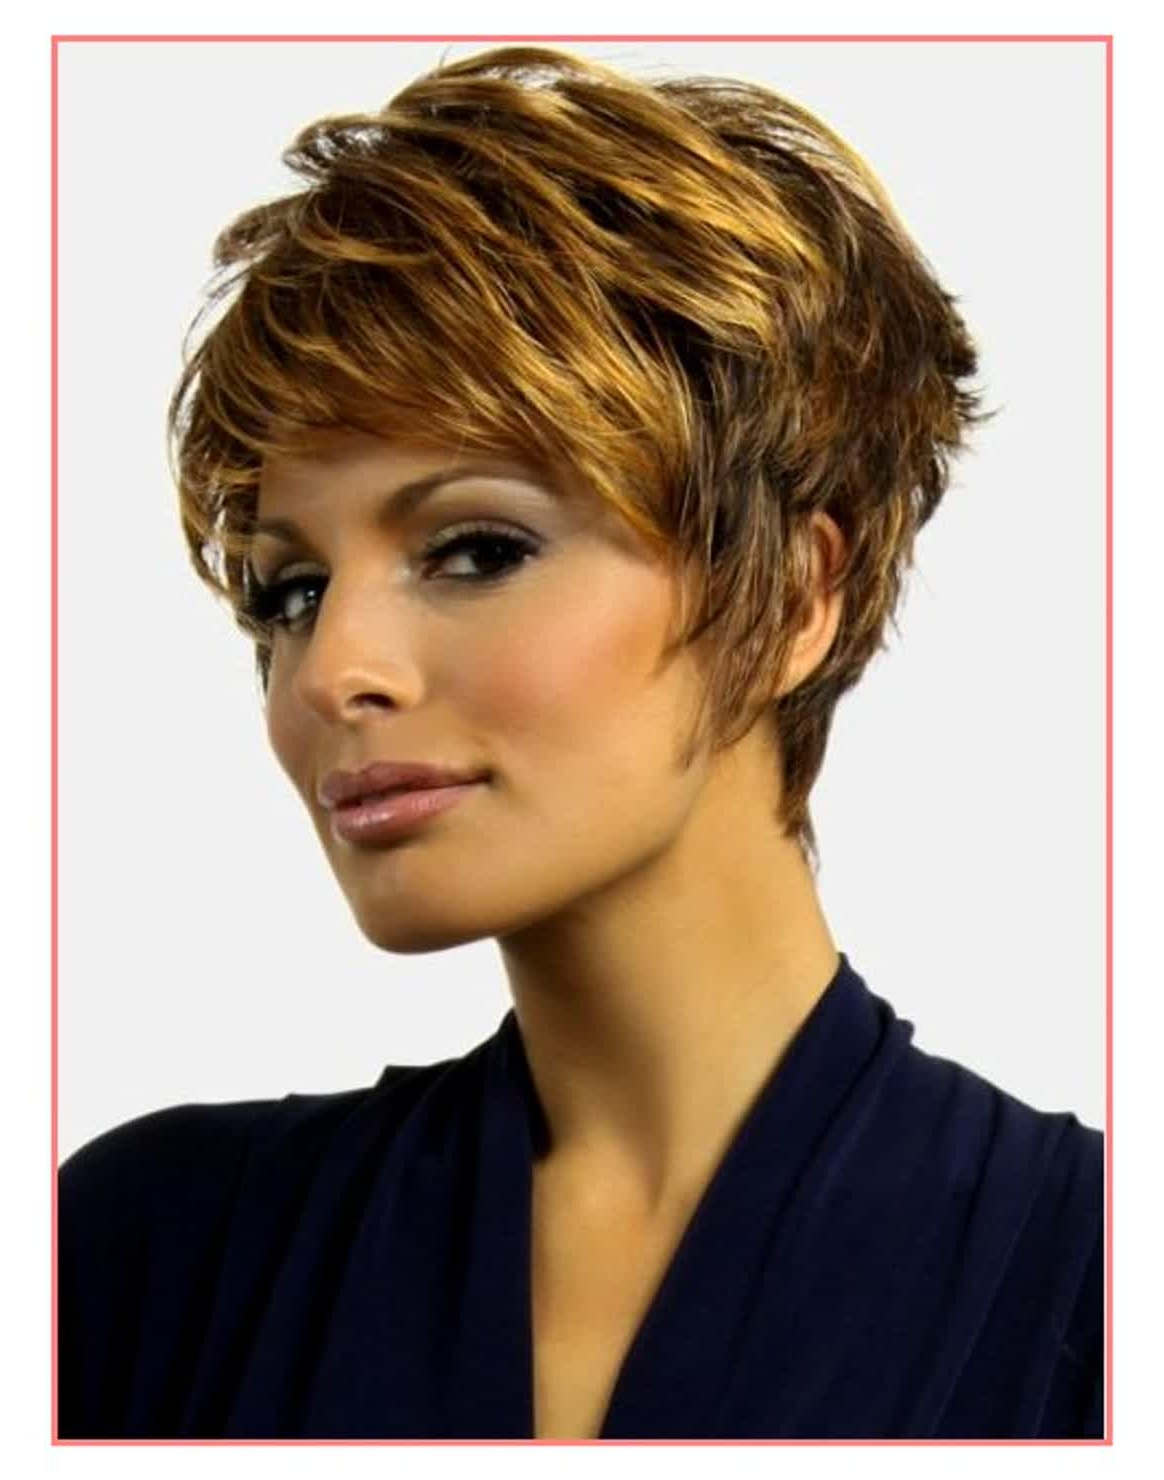 Find Out Full Gallery Of Good Short Haircuts For Thick Frizzy Hair Within Short Haircuts For Thick Curly Frizzy Hair (View 7 of 25)